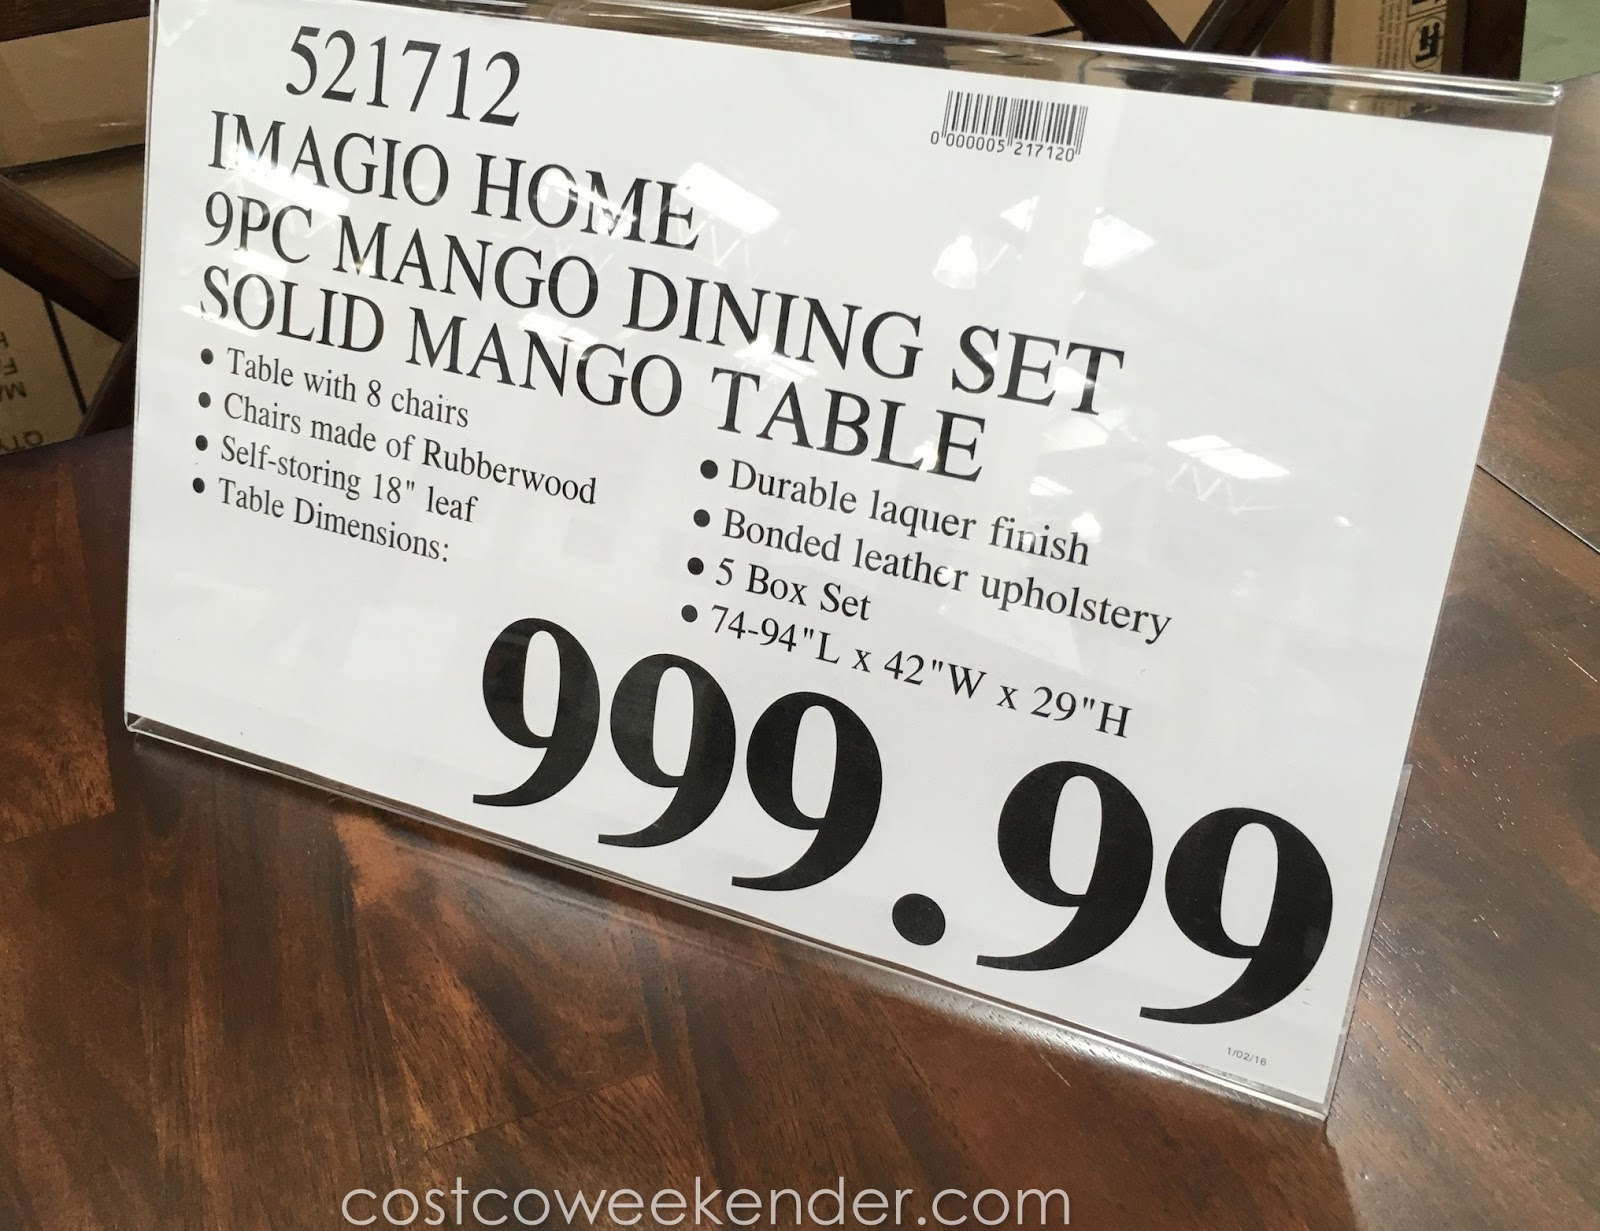 Imagio Home 9 piece Solid Wood Dining Set | Costco Weekender